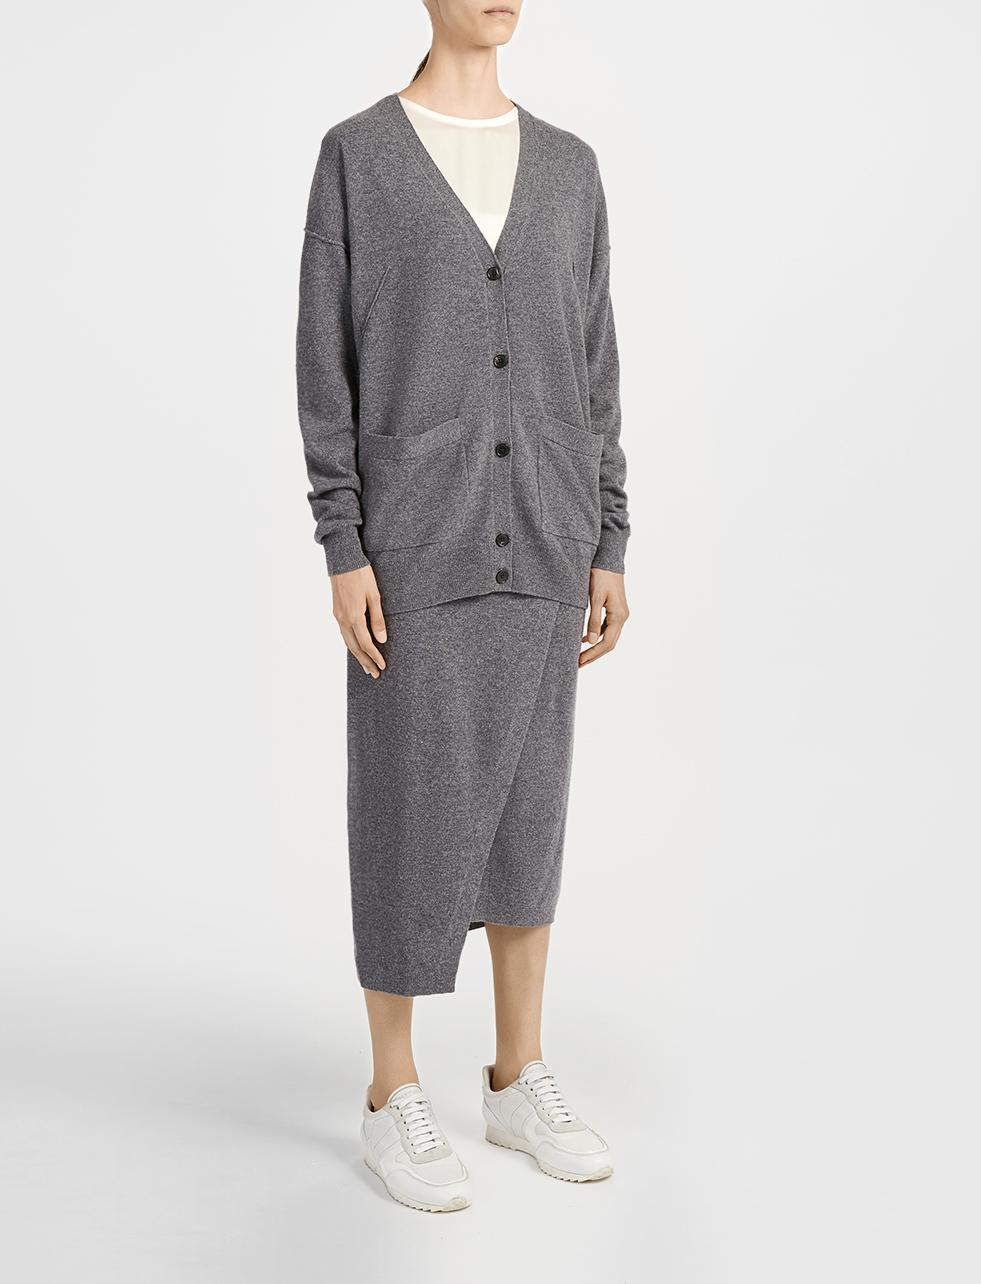 Joseph Soft Wool V Neck Cardigan in Gray | Lyst